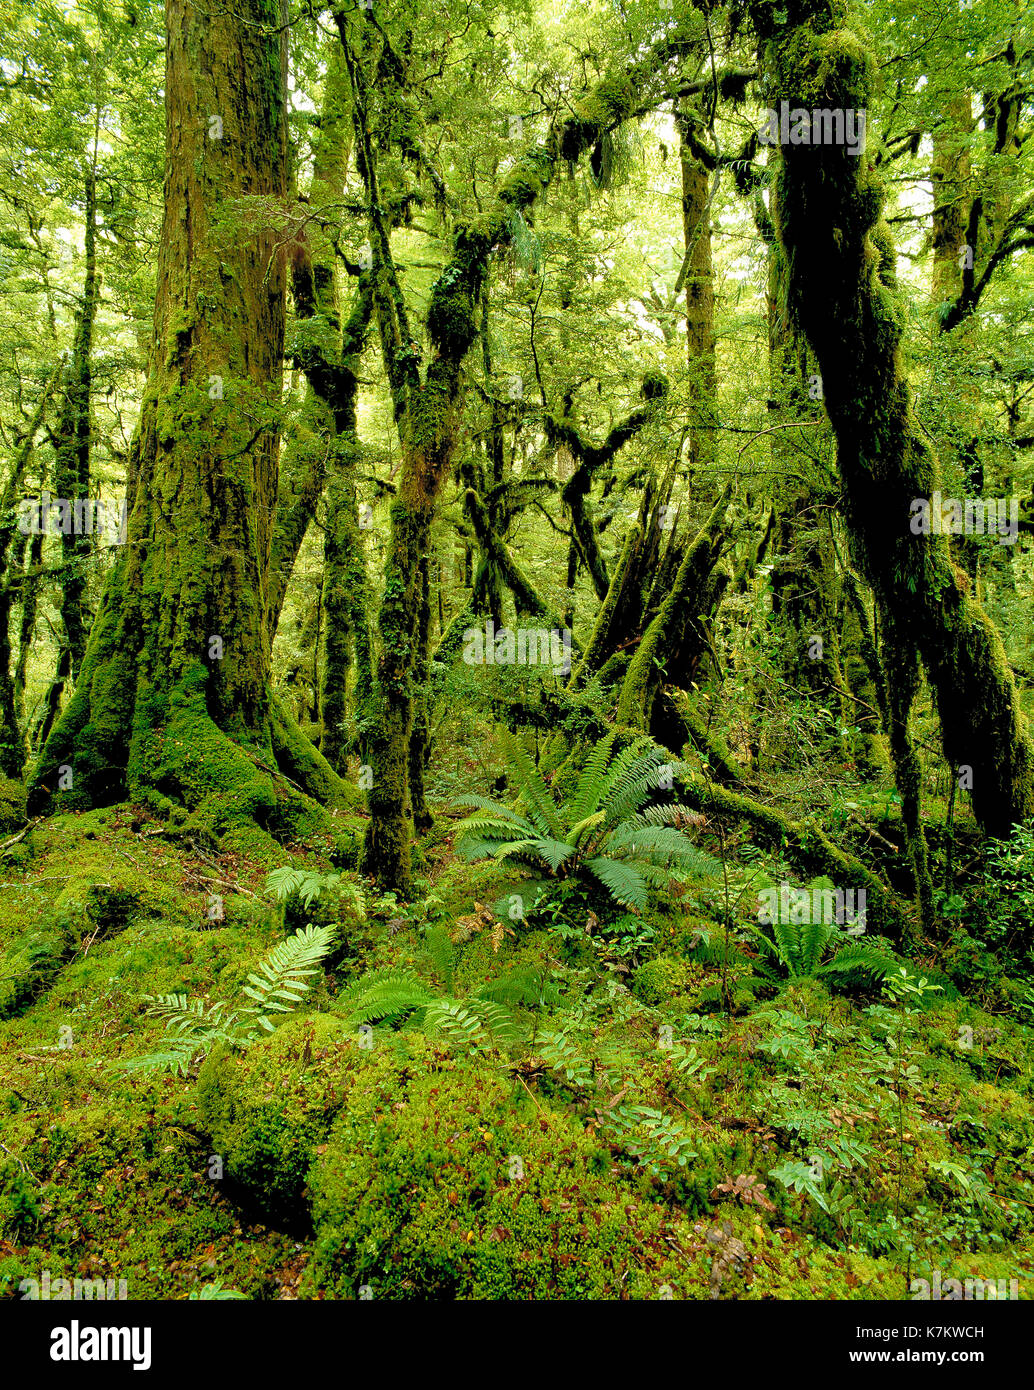 New Zealand. South Island. Moss covered rainforest. - Stock Image